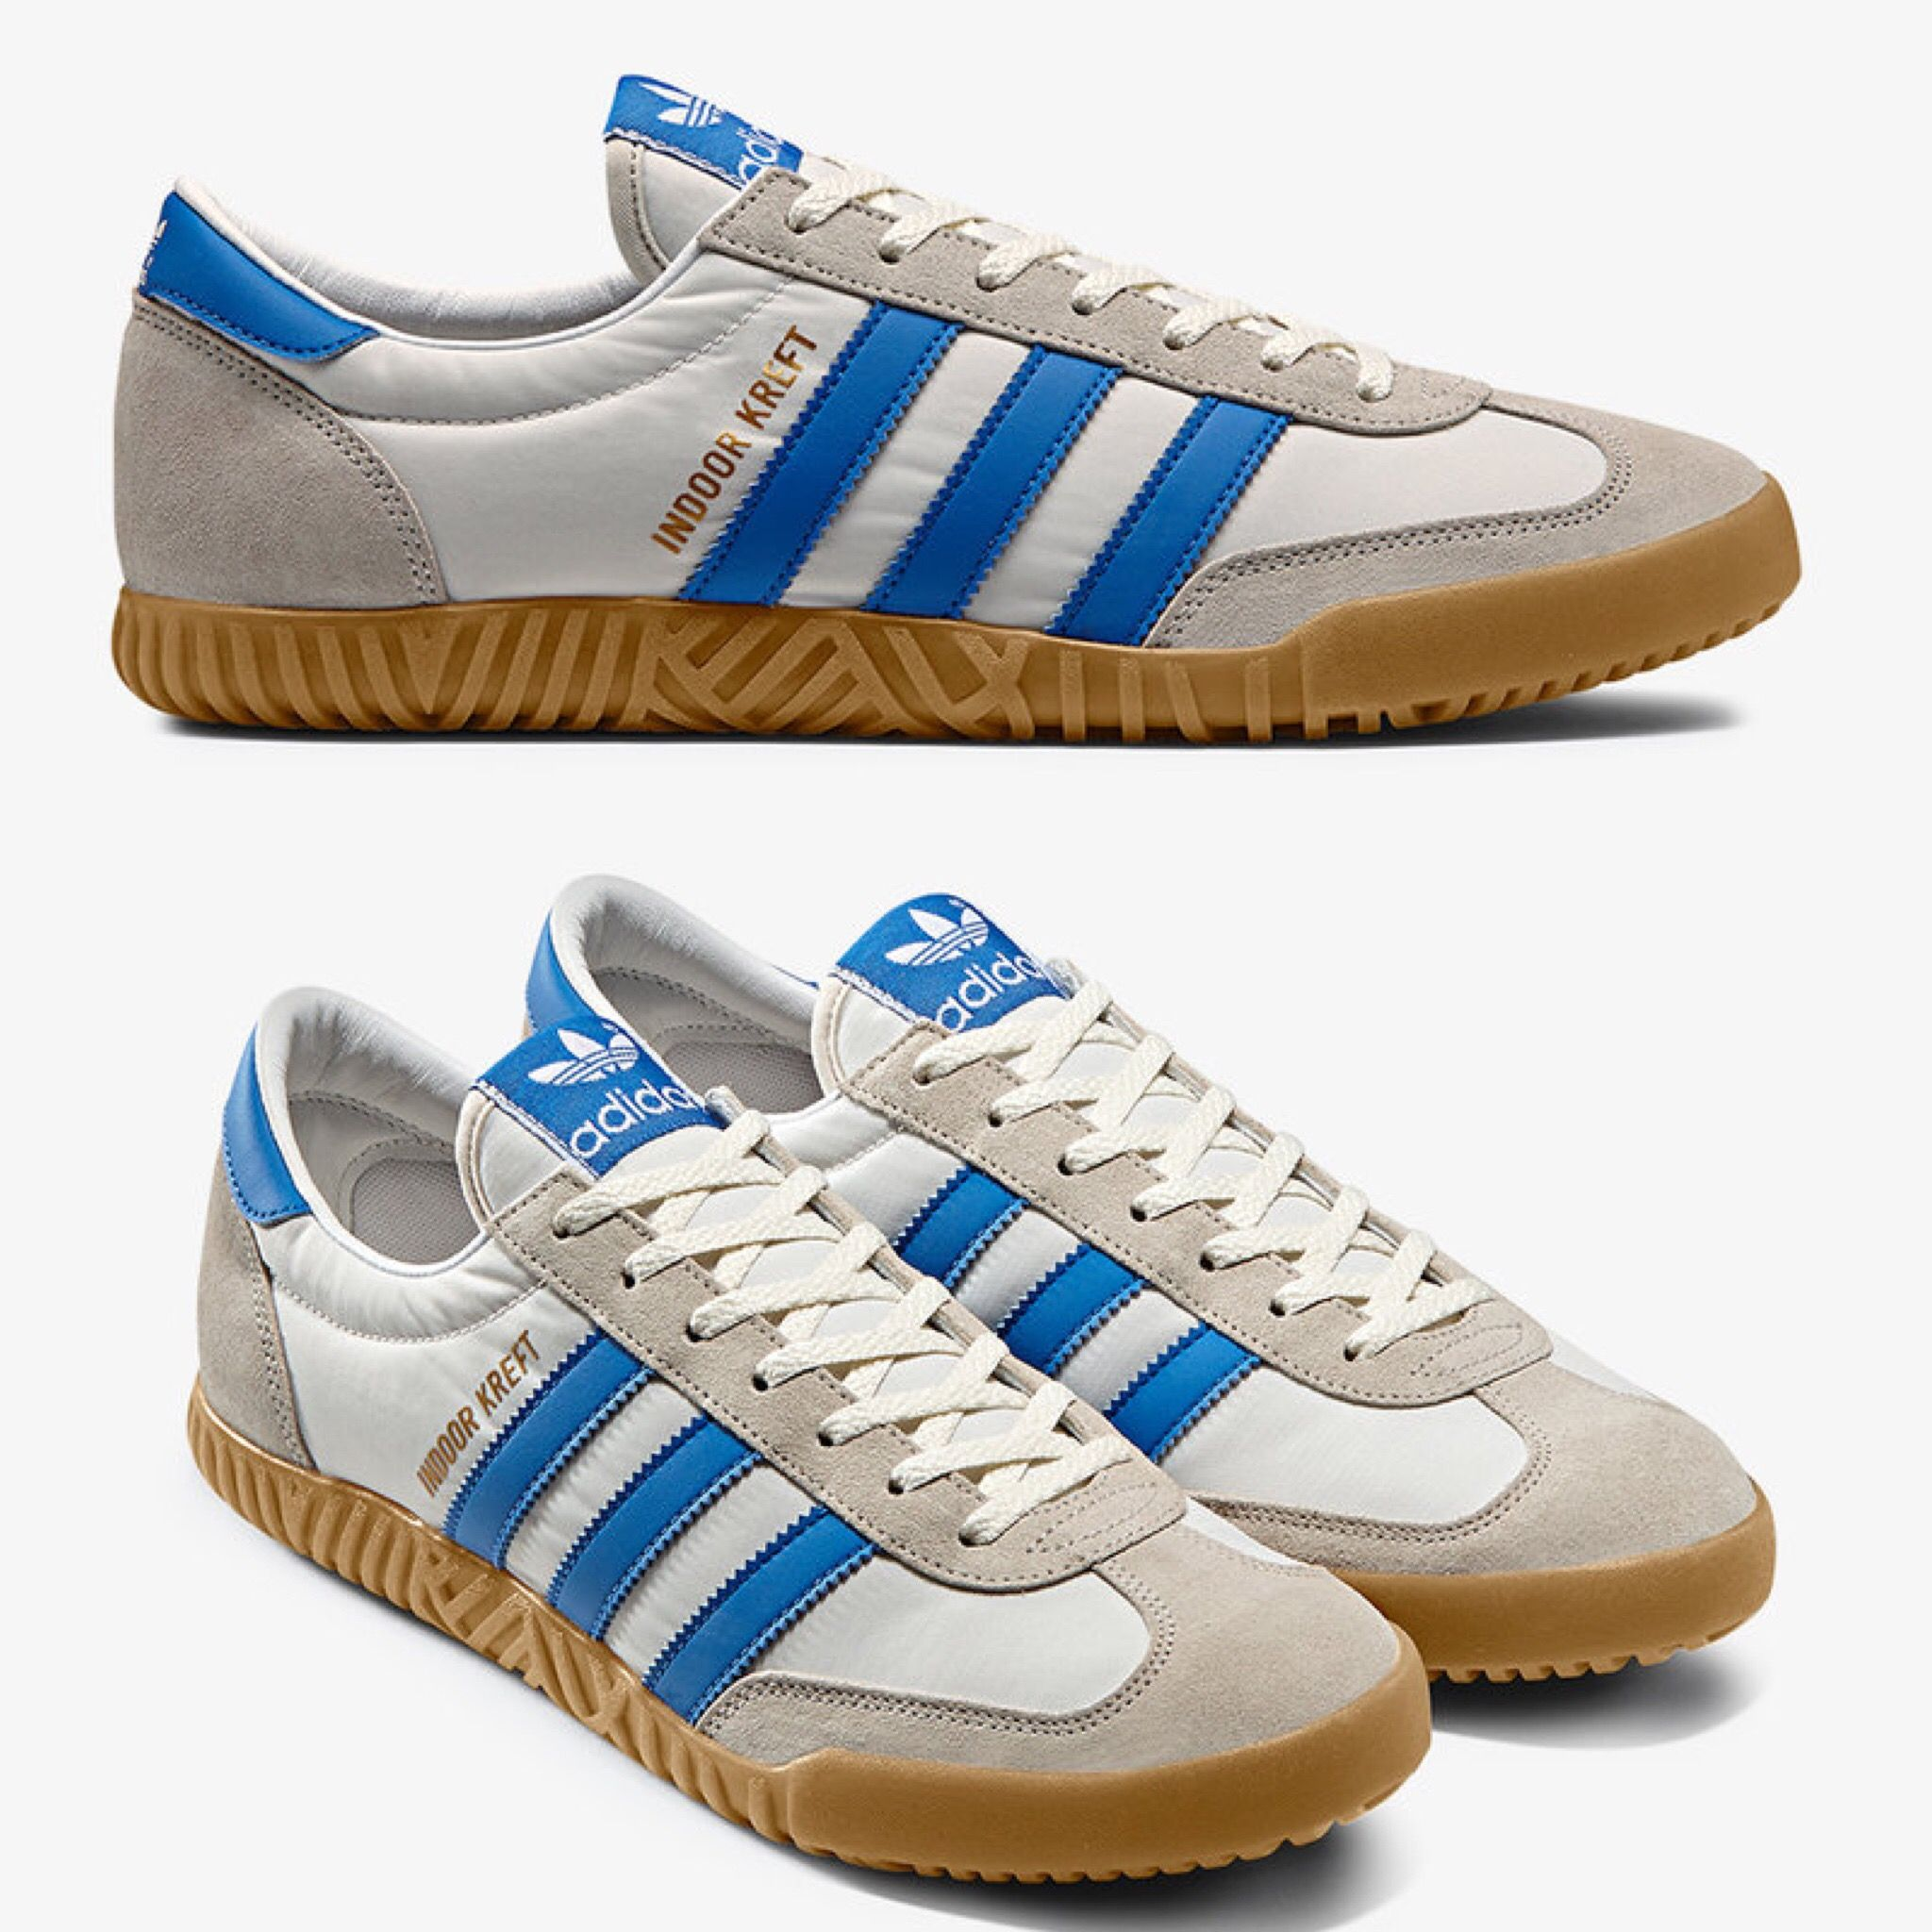 Inflar Hospitalidad puñetazo  Adidas Indoor Kreft | Adidas shoes originals, Adidas fashion, Vintage adidas